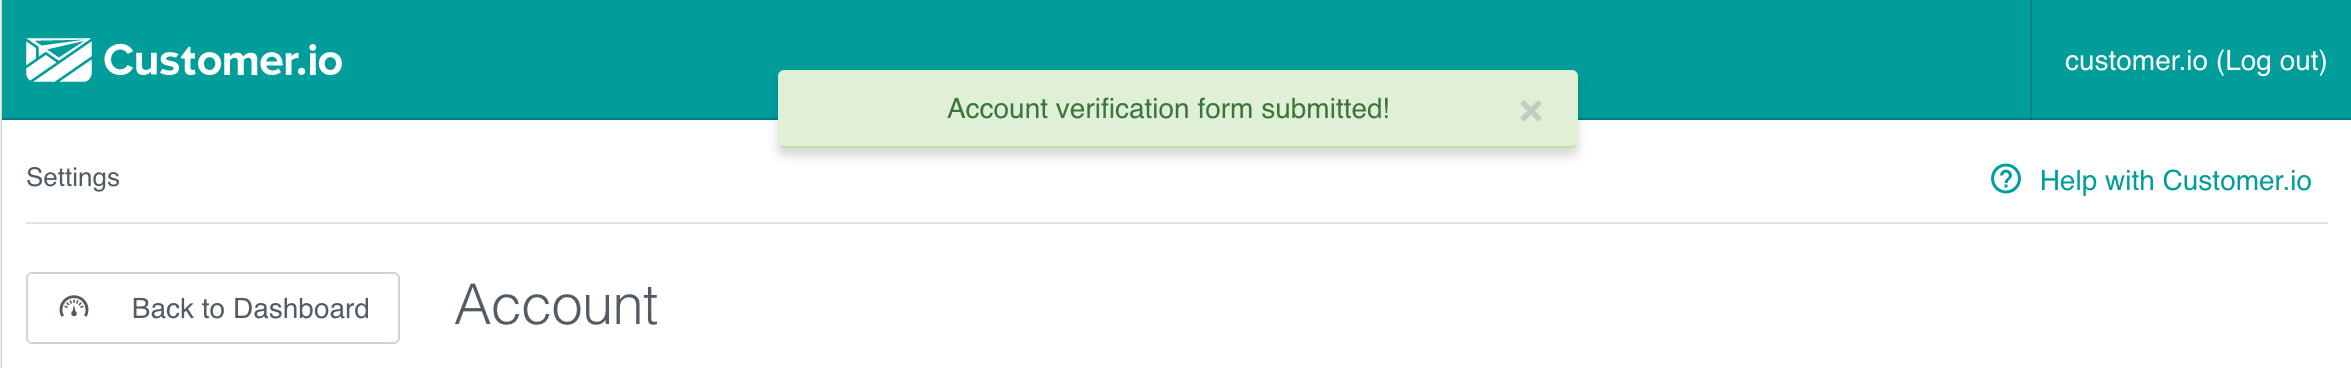 Account Verification - Success